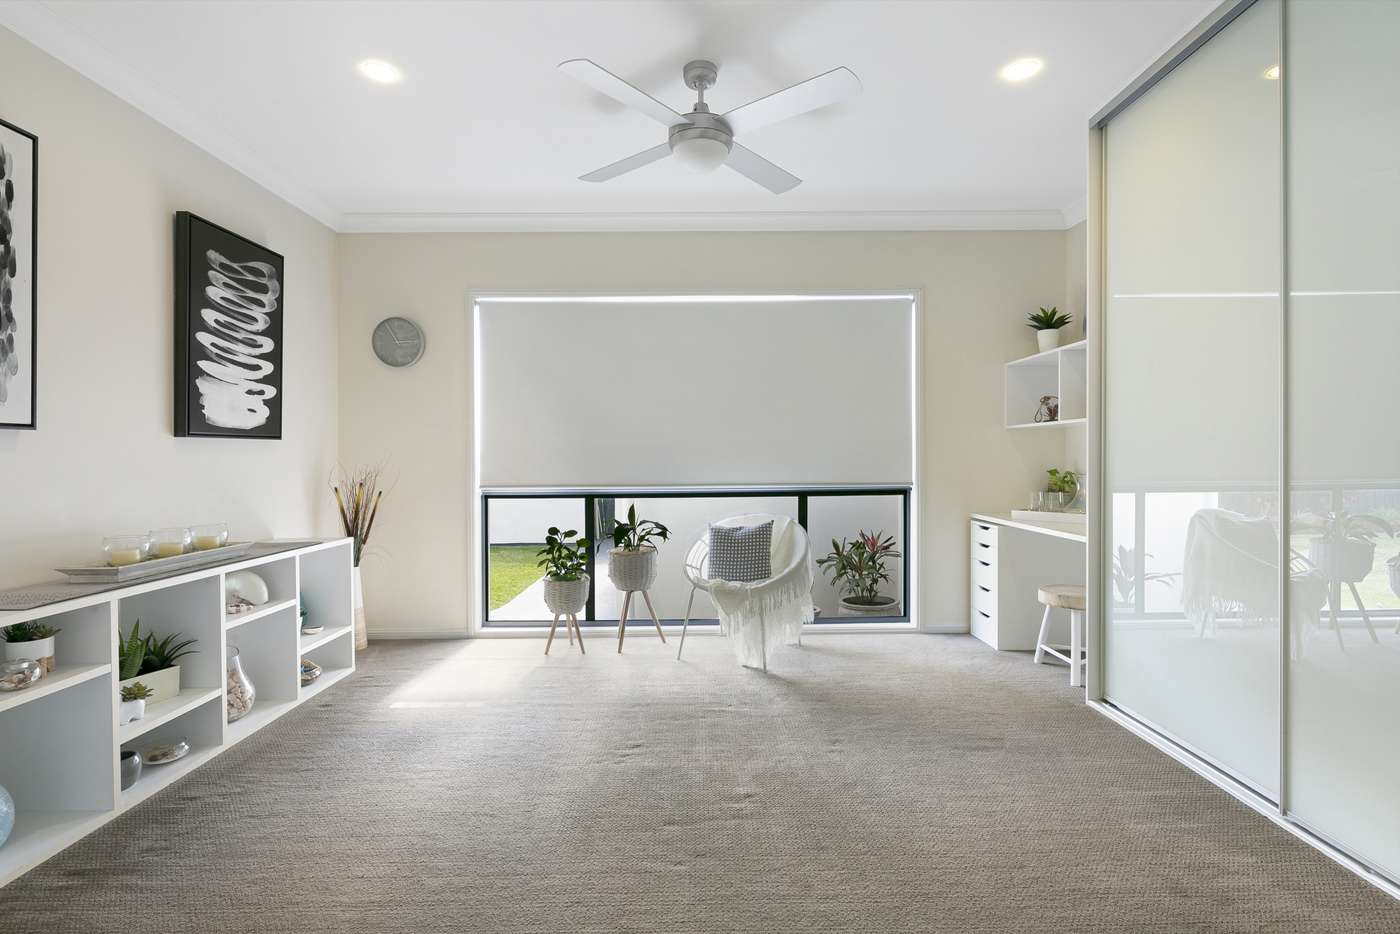 Sixth view of Homely house listing, 30 Islander Court, Burleigh Waters QLD 4220